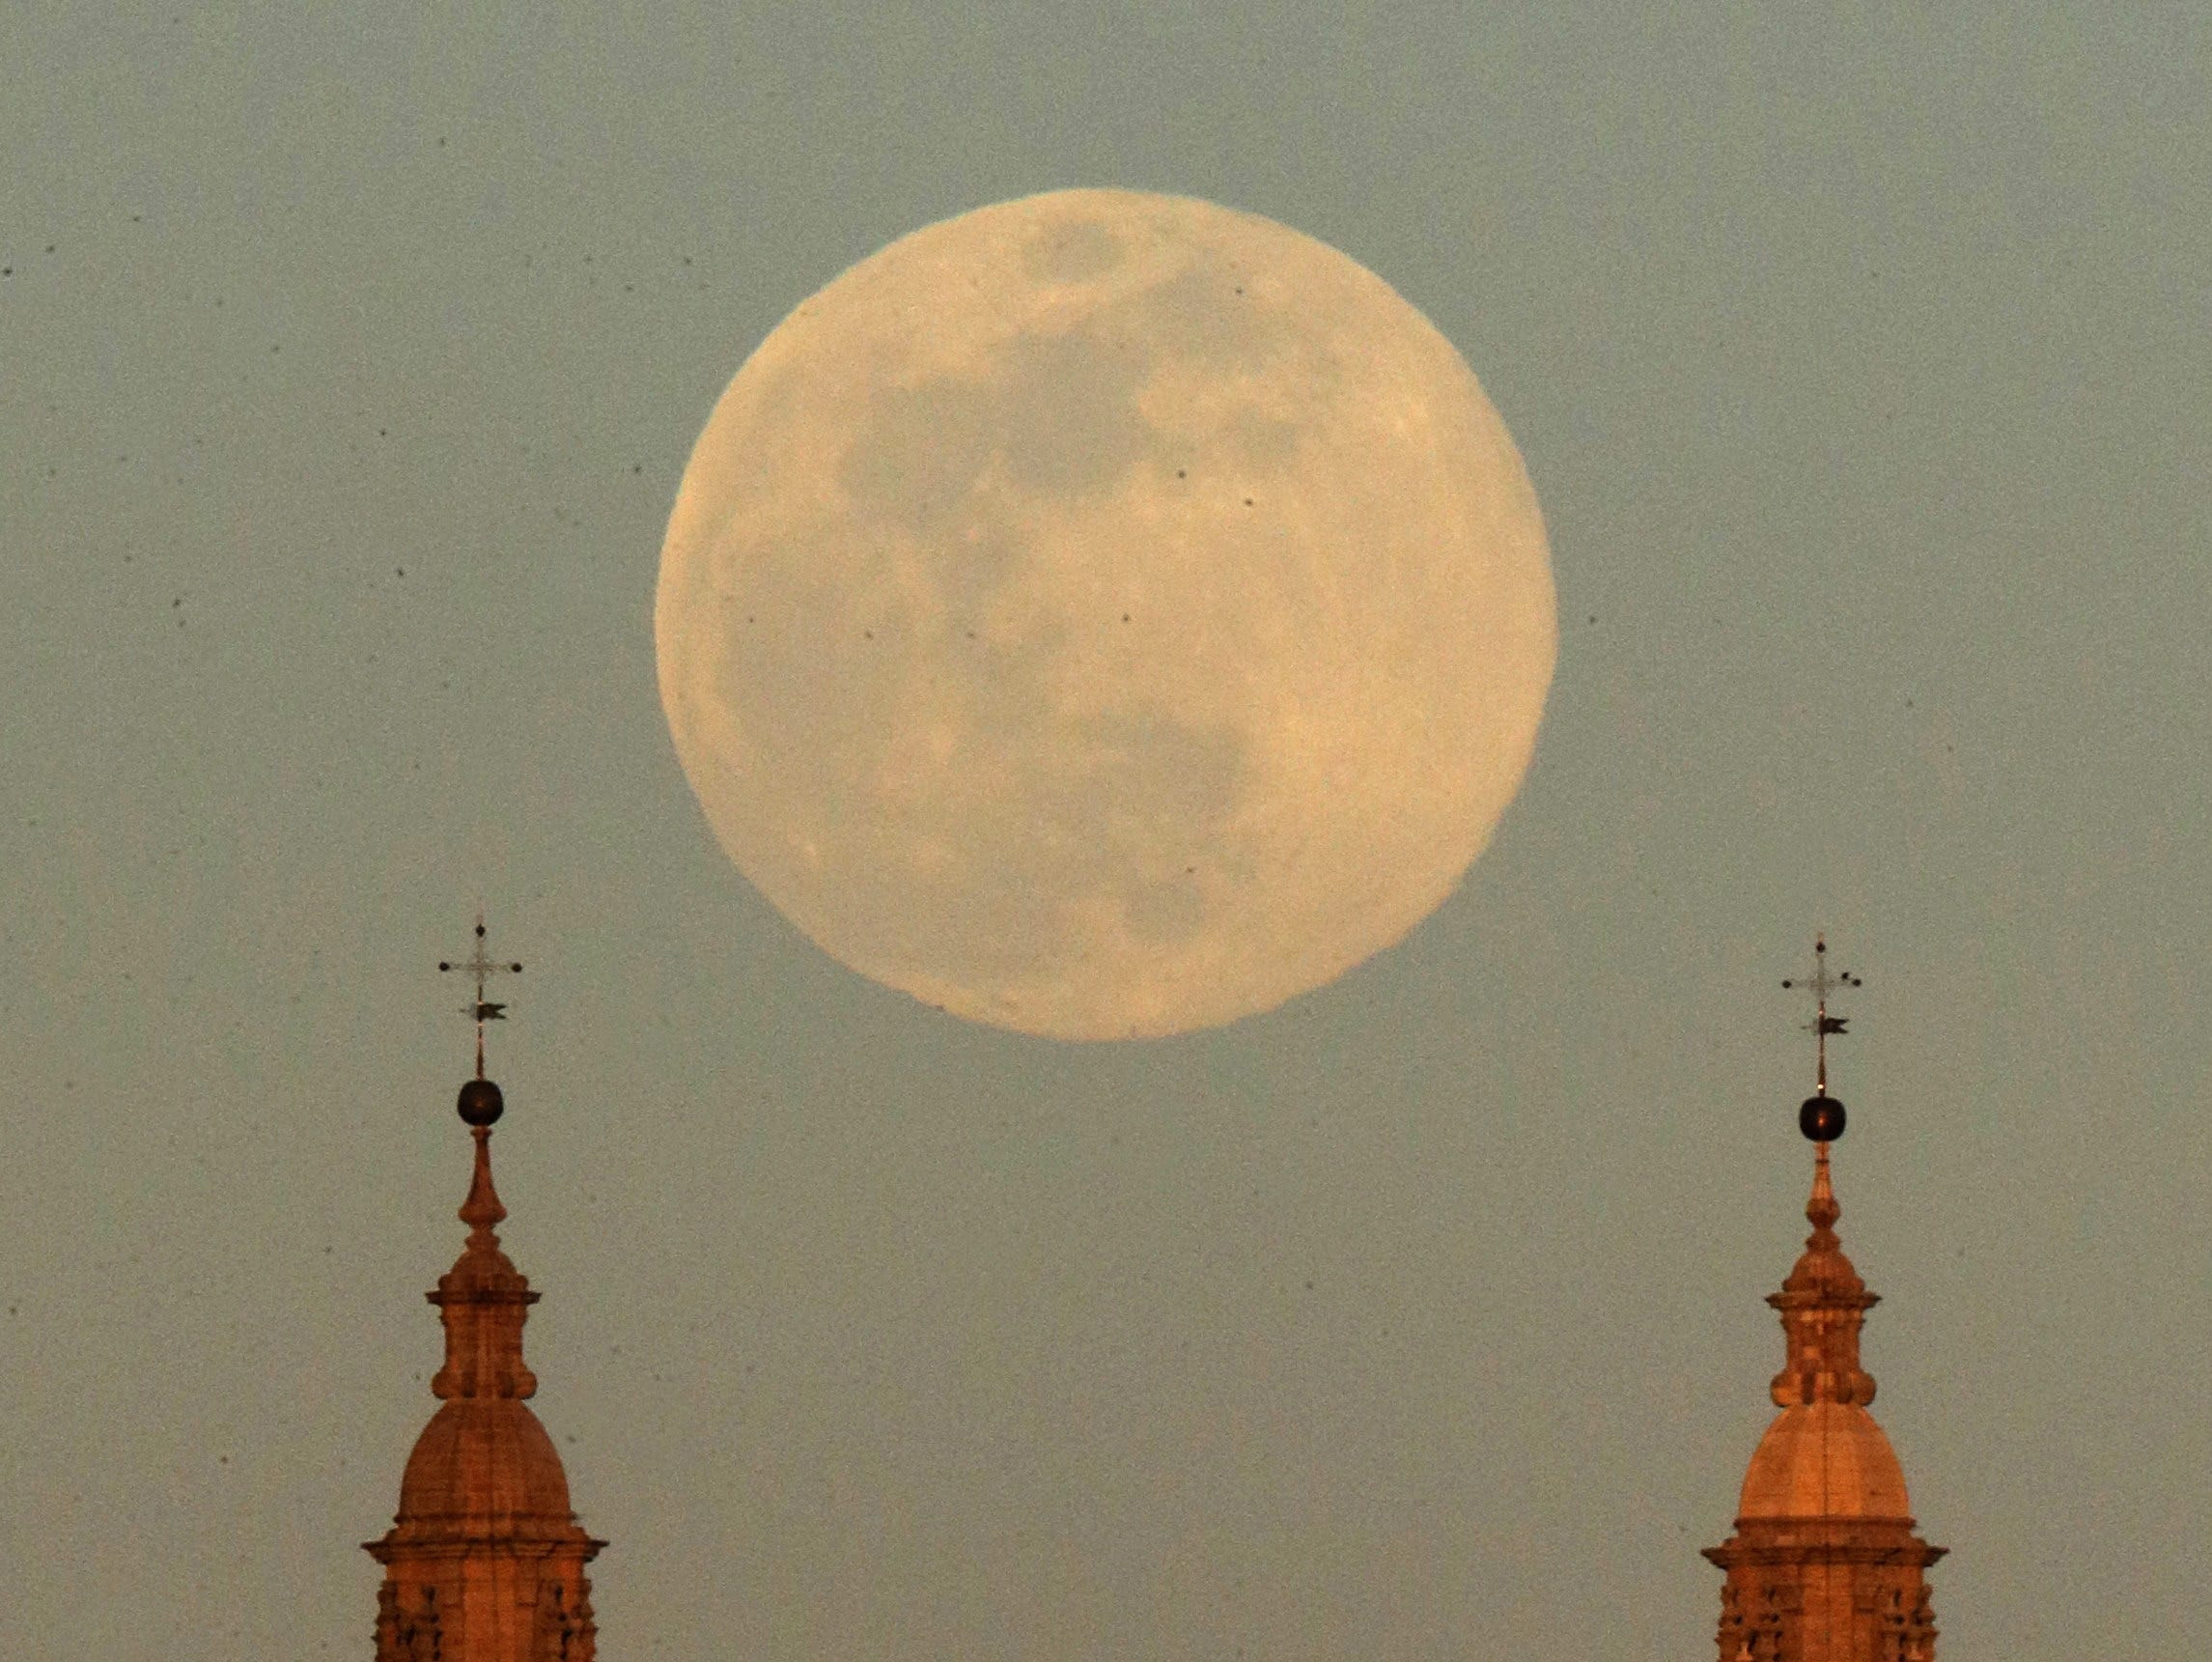 A view of the supermoon that announces the start of the spring over the Santiago de Compostela cathedral, Galicia, Spain on March 20, 2019.